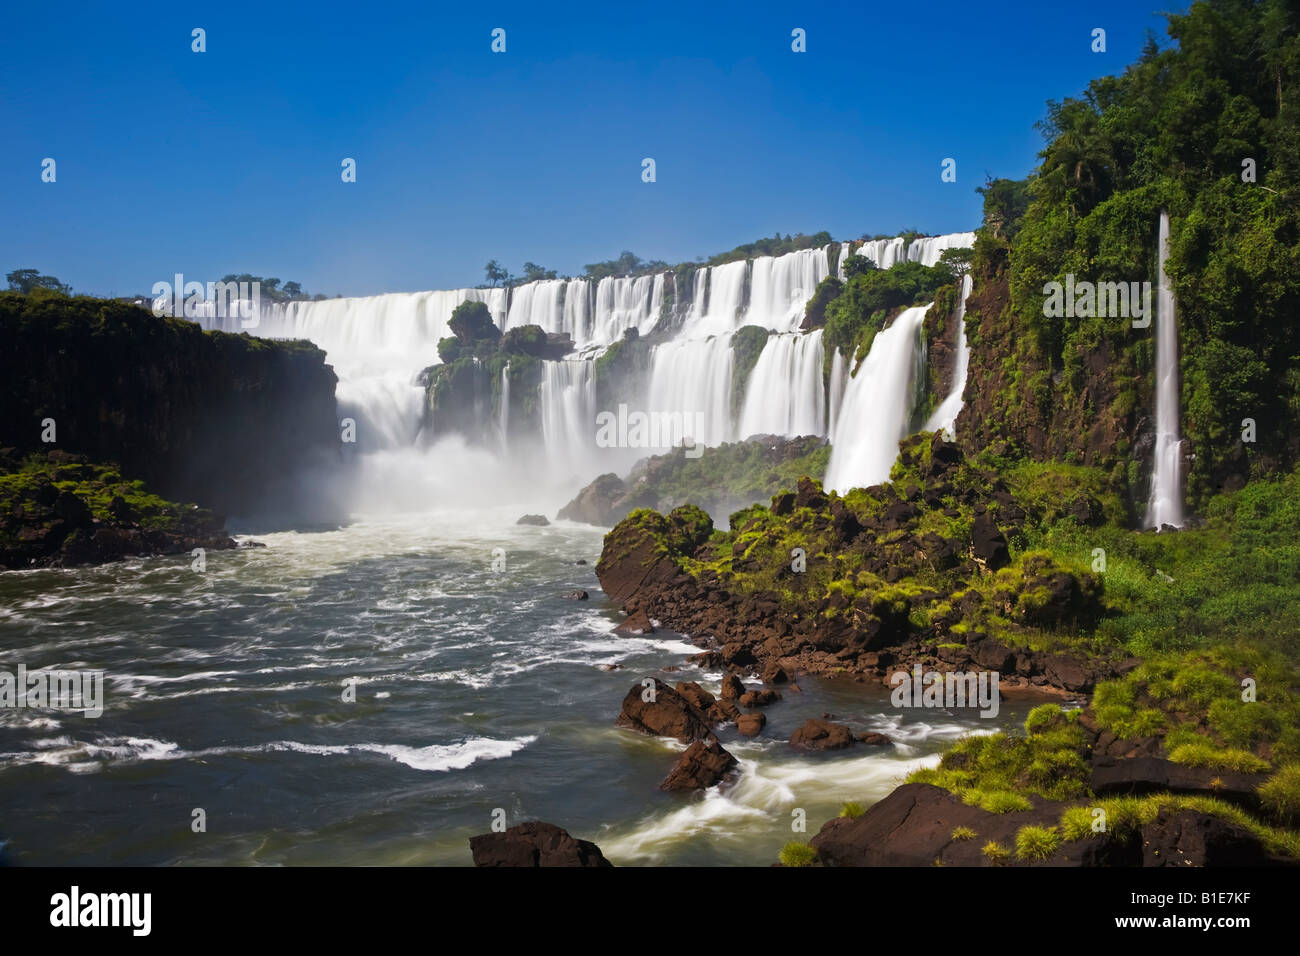 Chutes d'Iguaçu Photo Stock